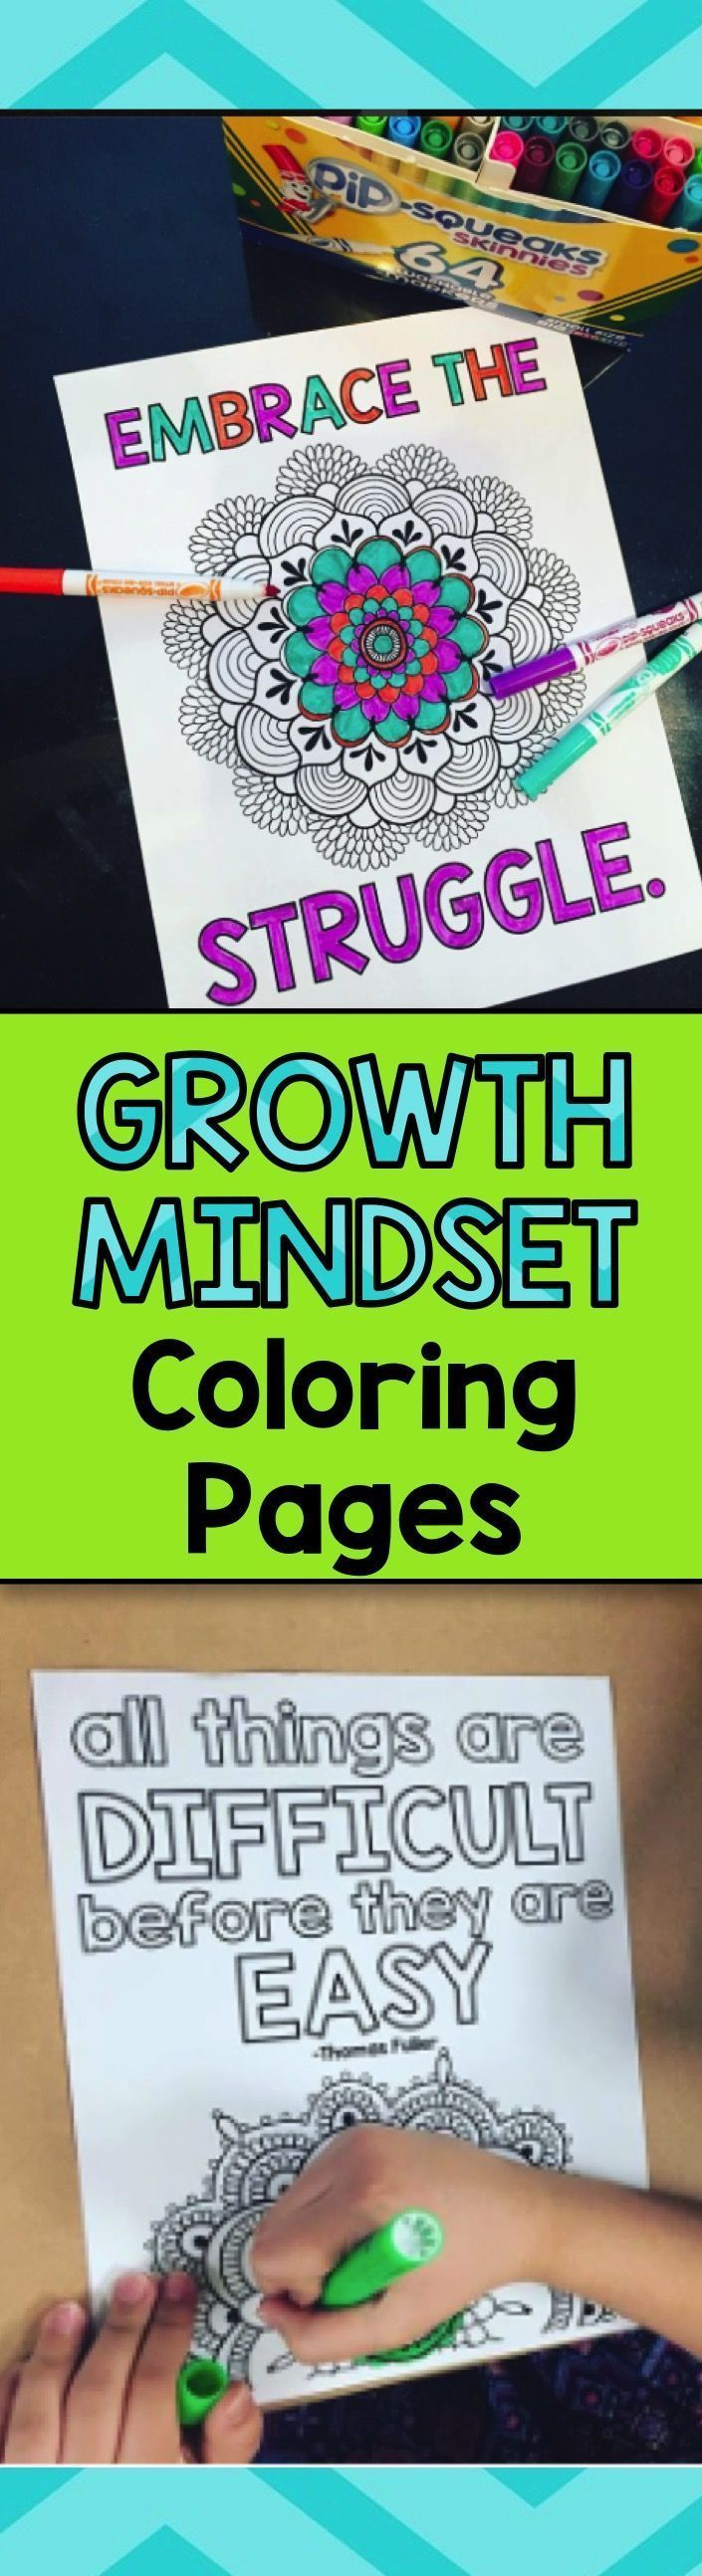 102 best Coloring sheets images on Pinterest | Coloring pages, Print ...